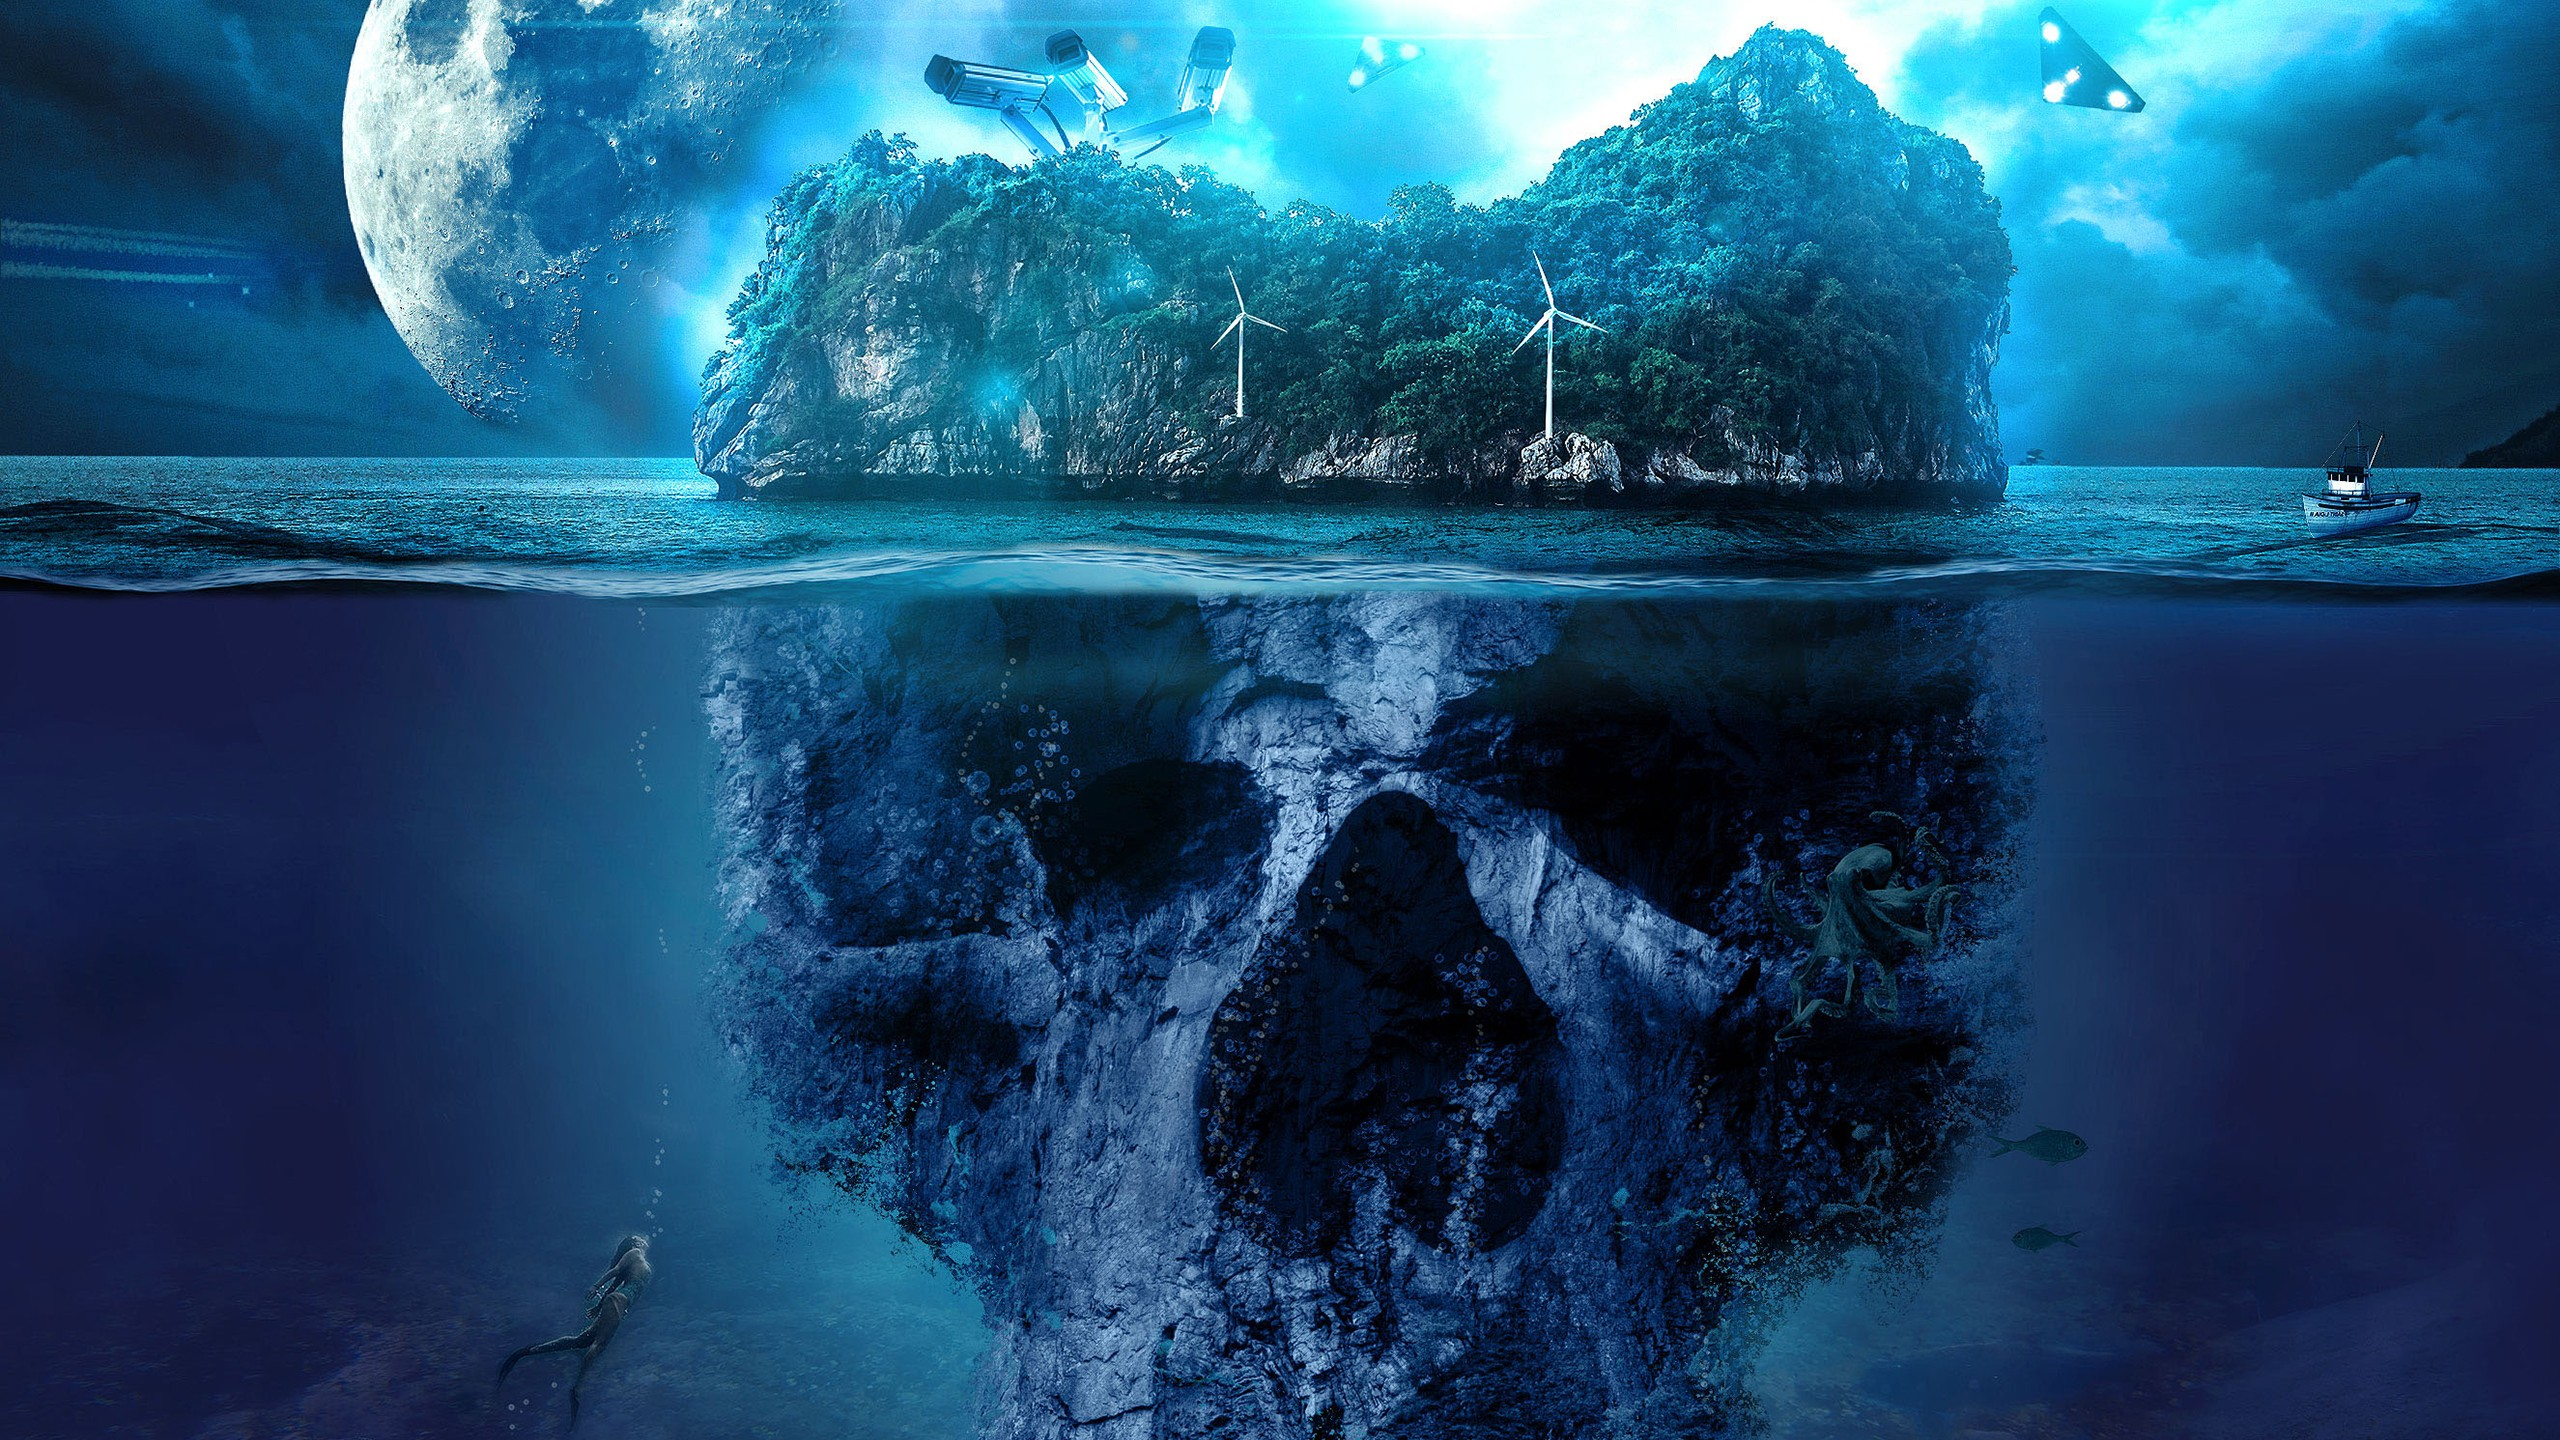 3d Beach Wallpaper Desktop Mystery Skull Island Wallpapers Hd Wallpapers Id 27263